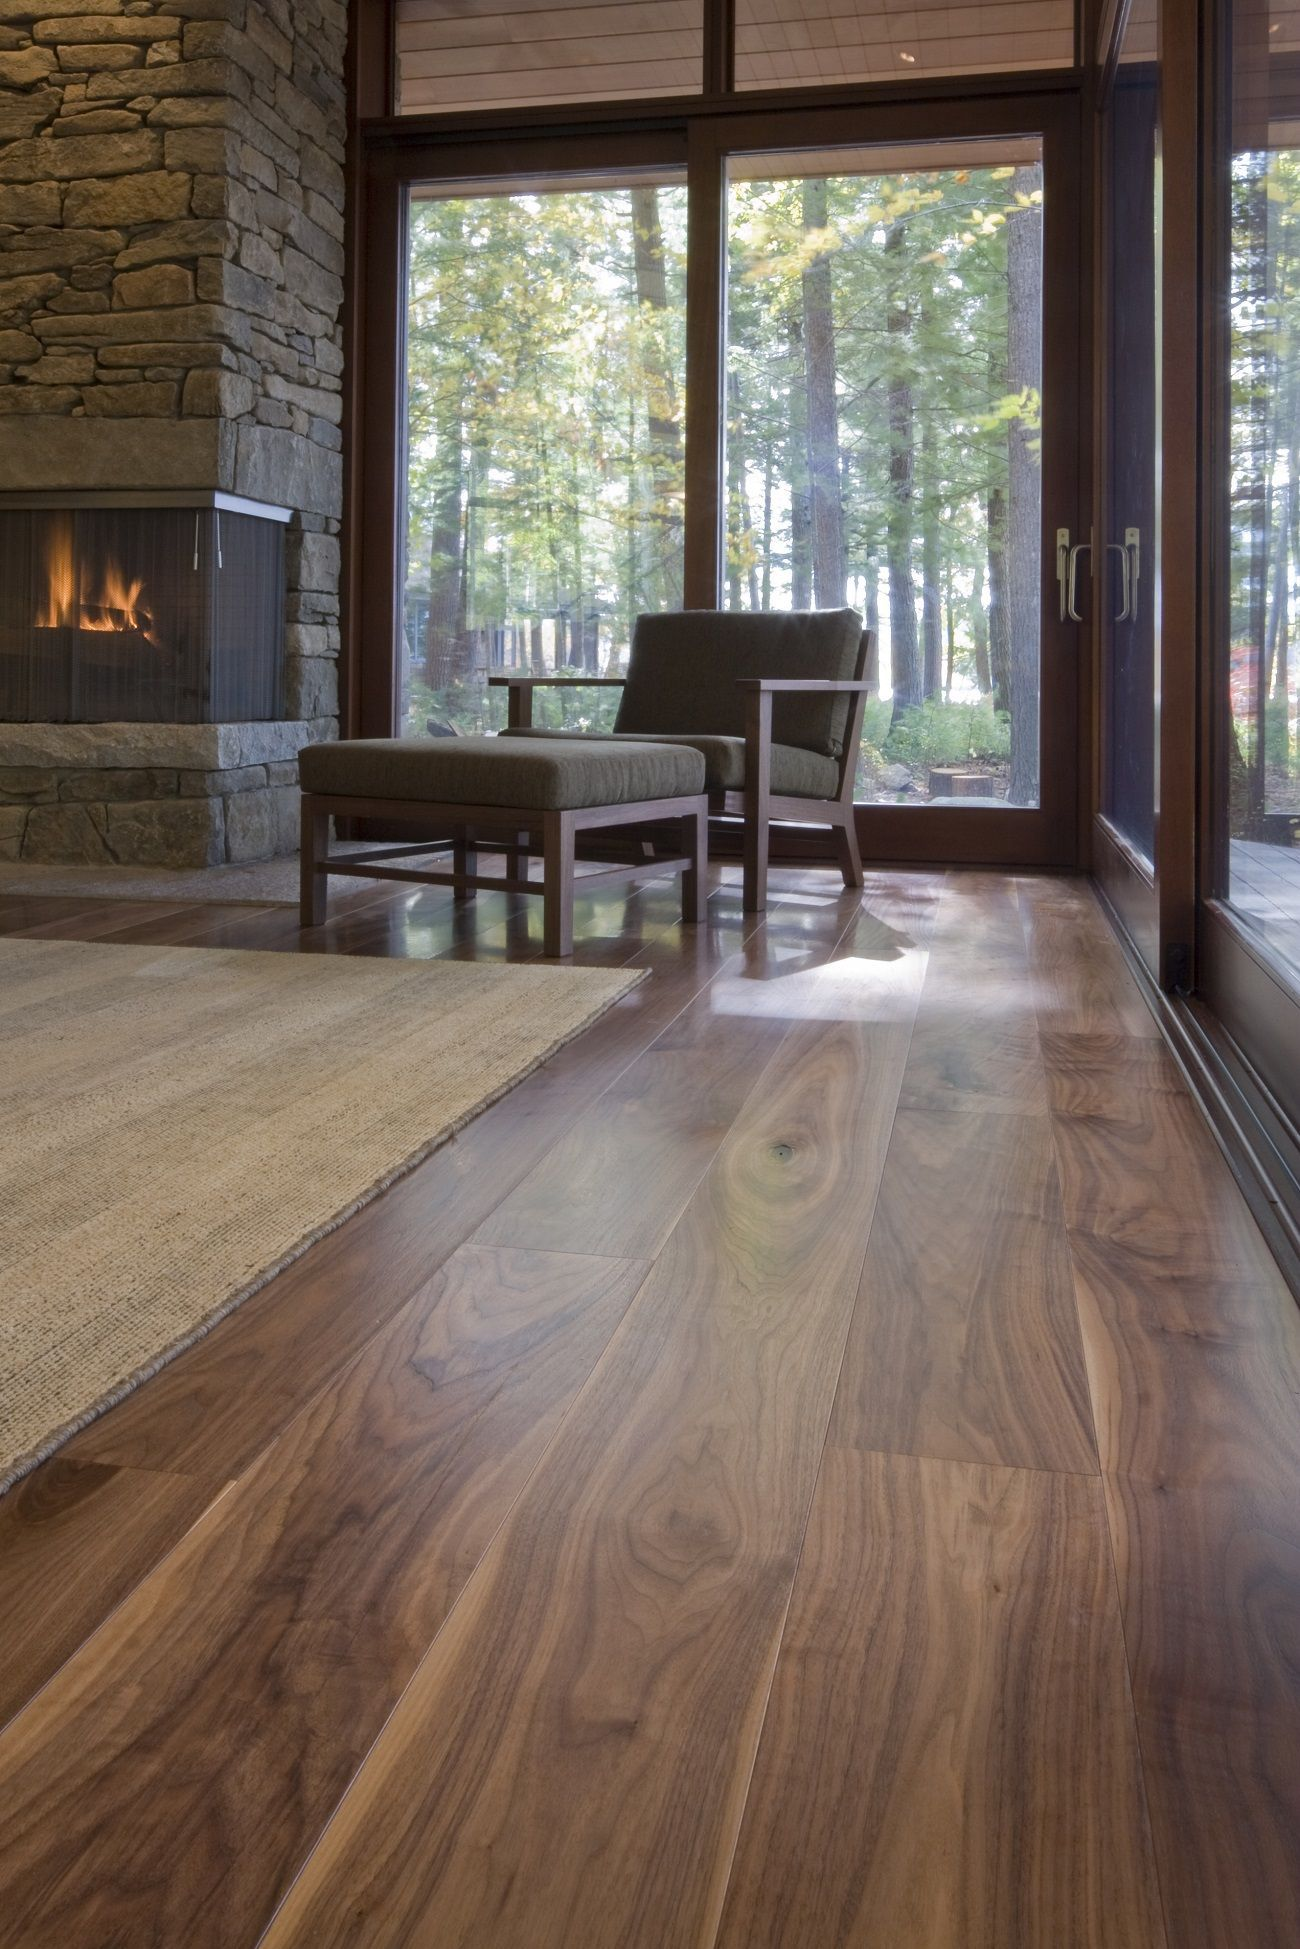 How to Choose Between Prefinished or Site Finished Wood